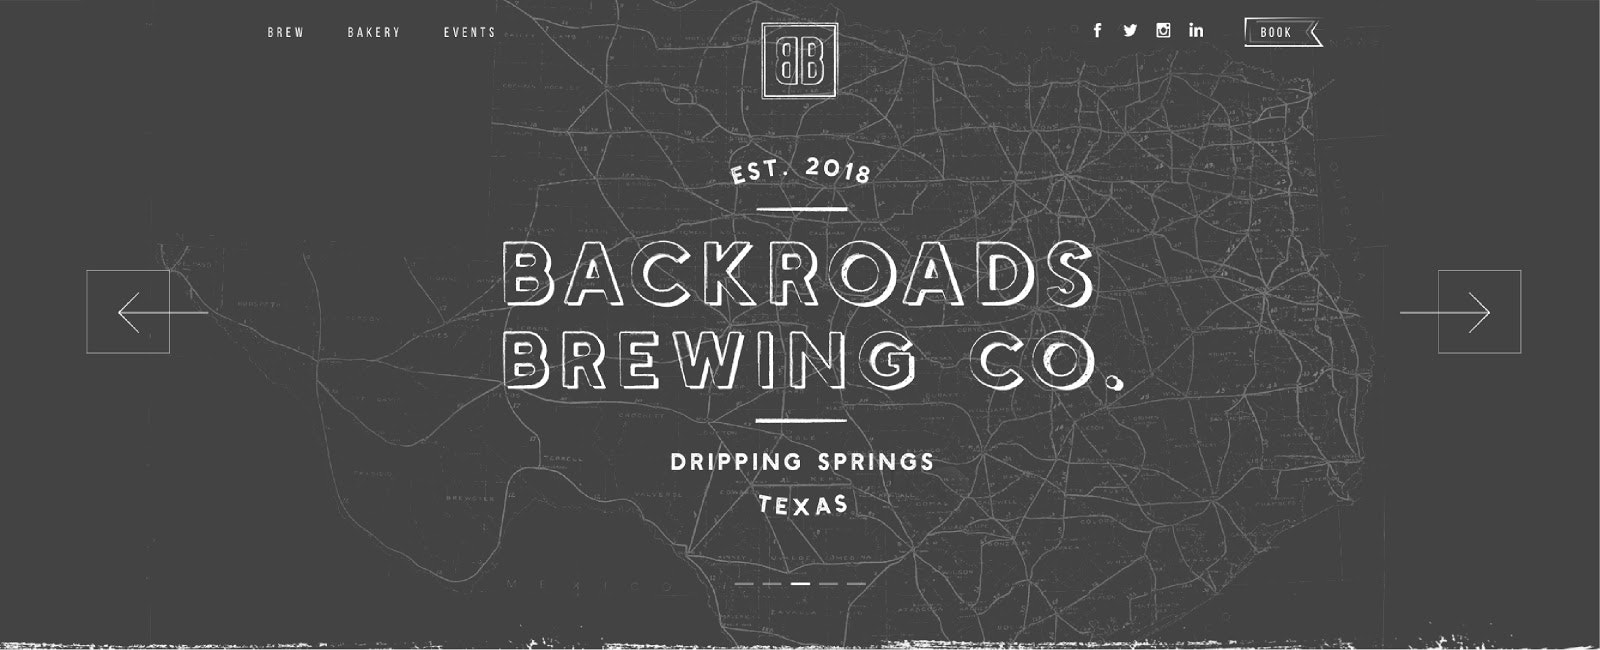 Backgroads Brewing Co. website